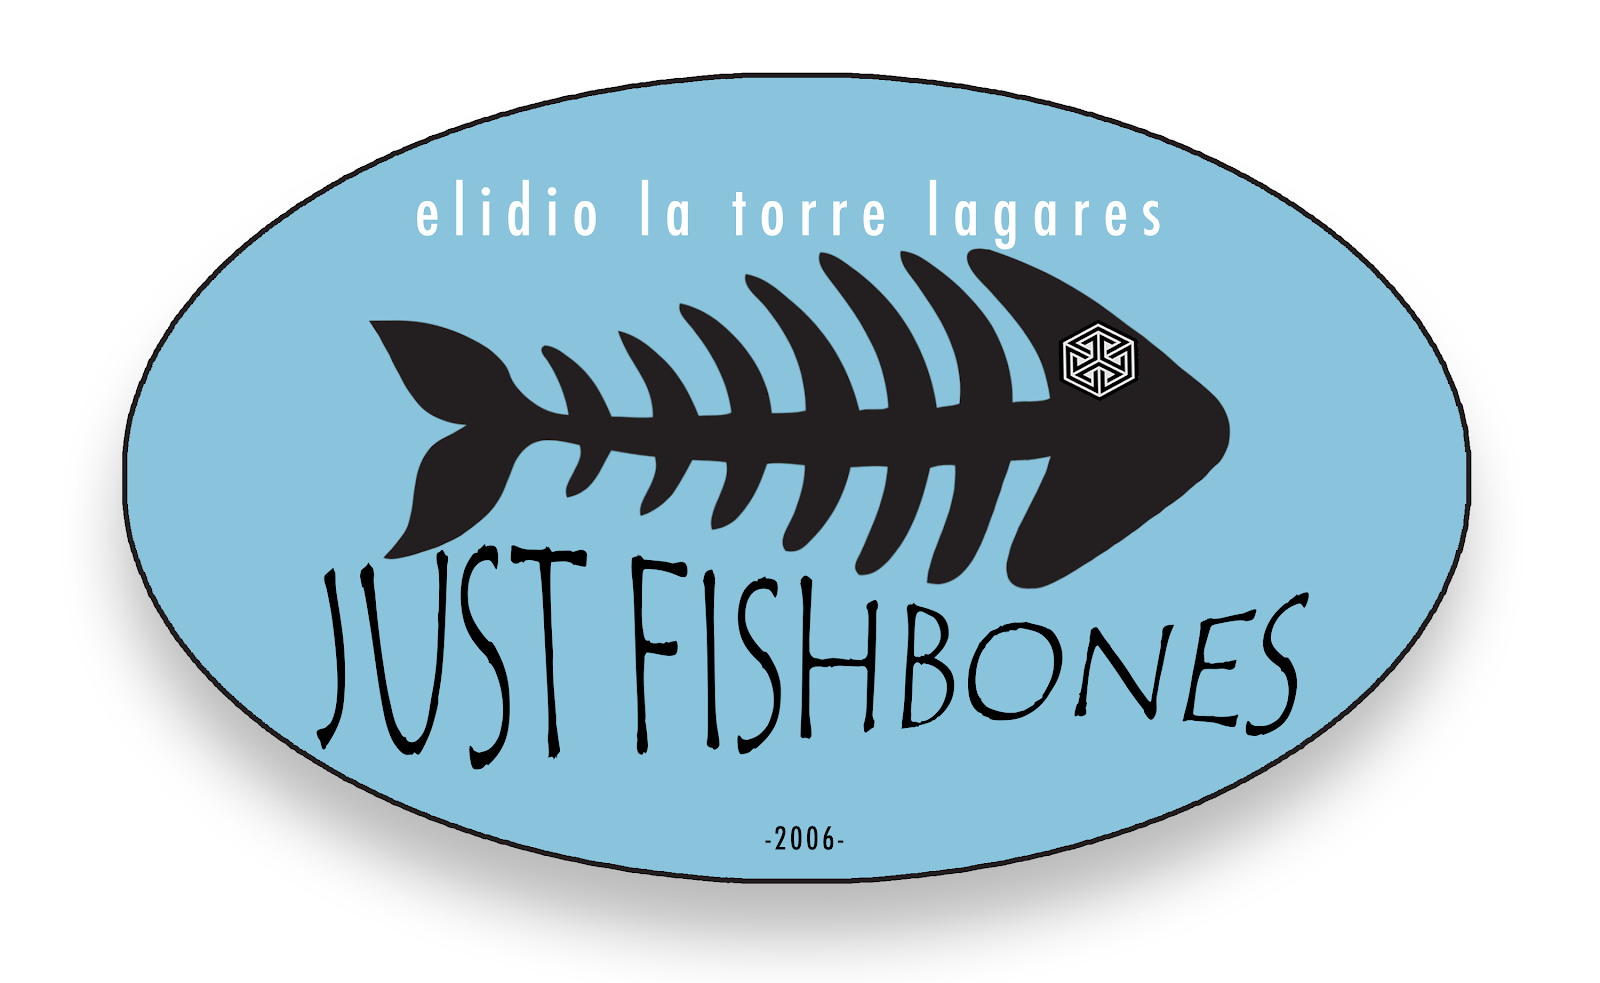 Just Fishbones